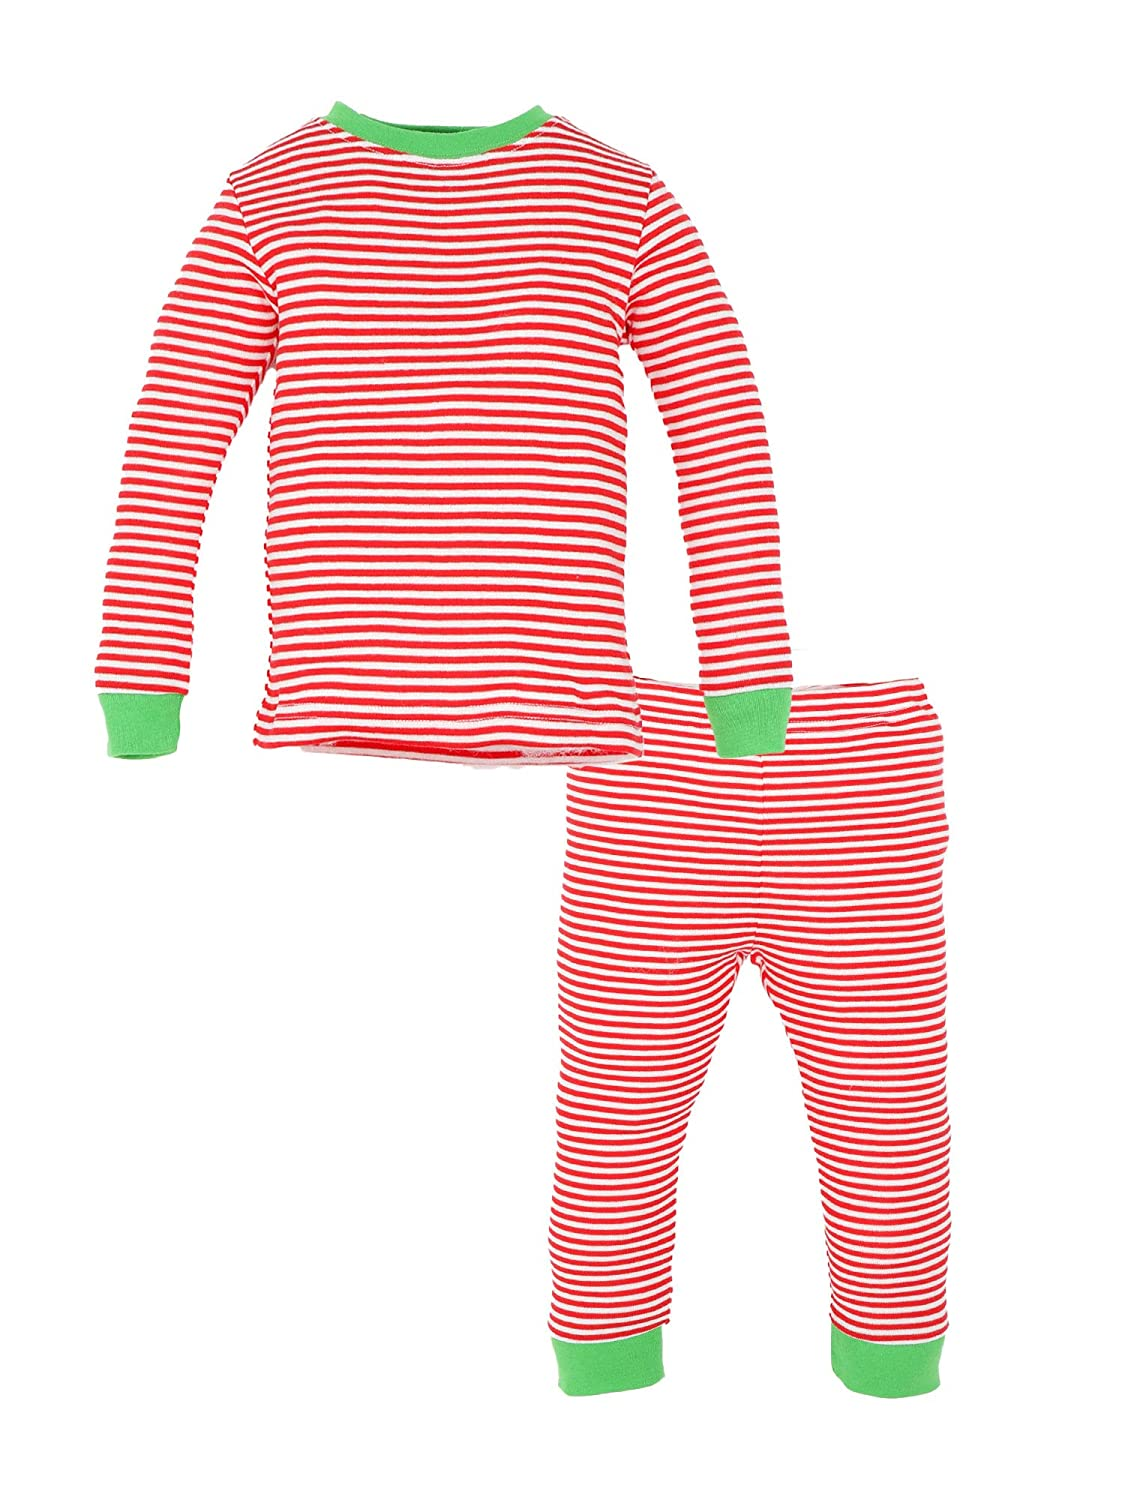 Under The Nile Organic Cotton Toddler Holiday Candy Cane Stripe Long Johns, 18 Months